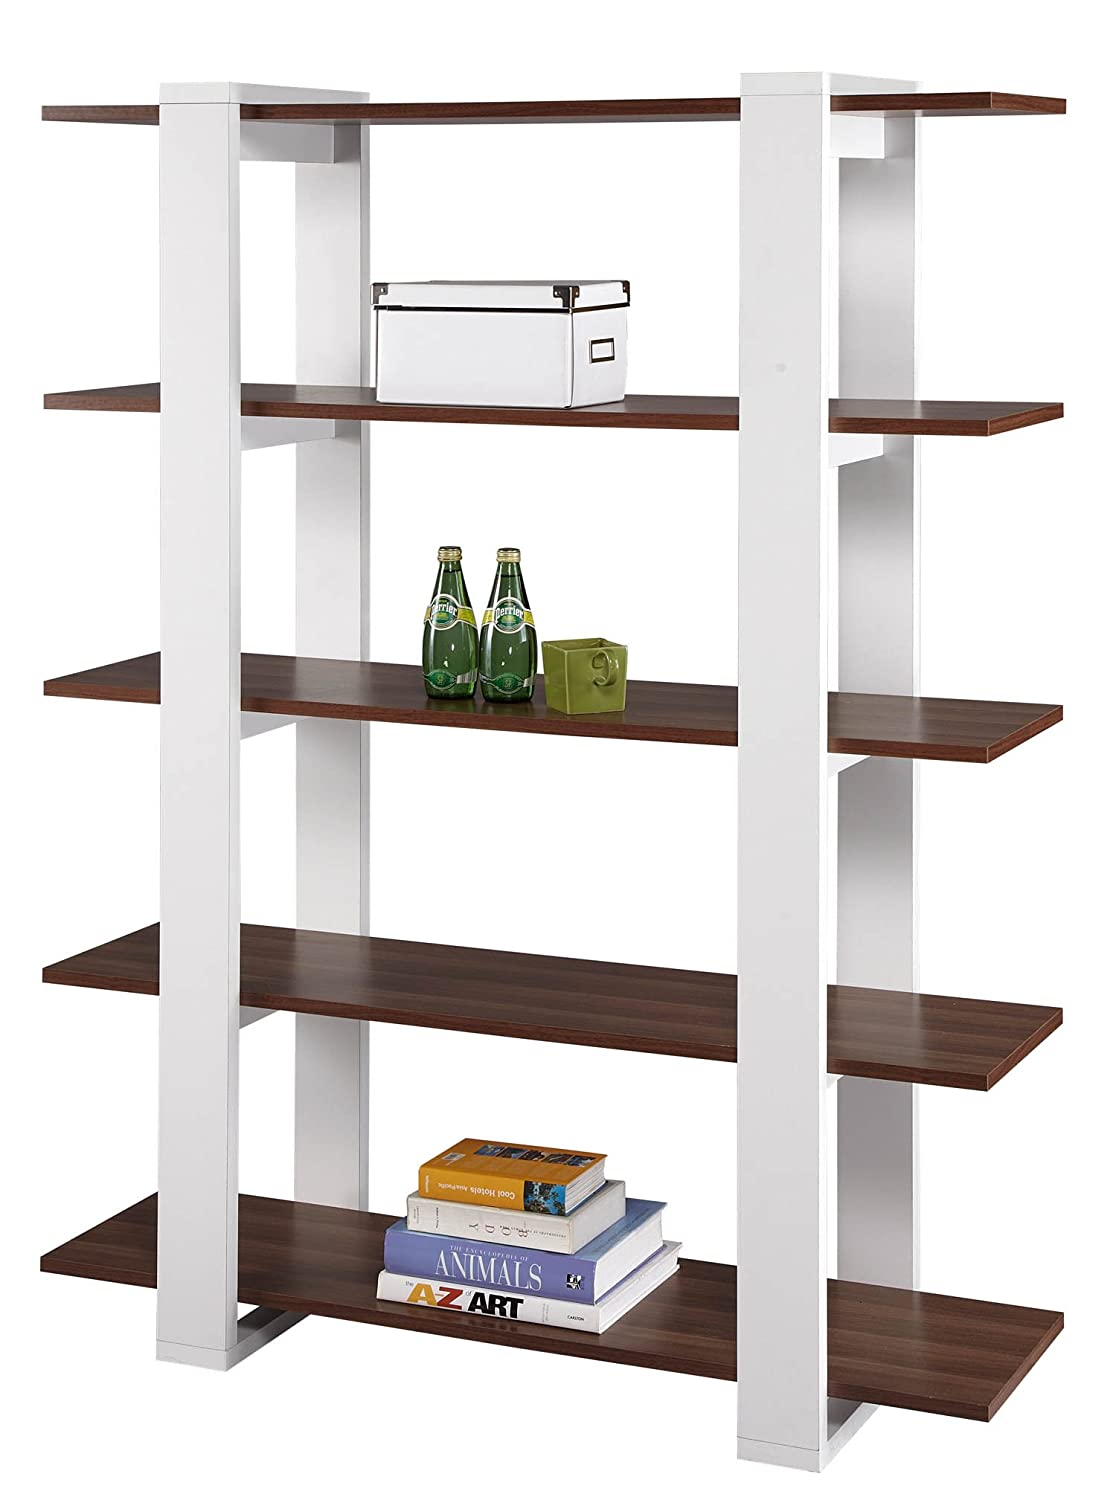 ioHOMES Marcel 5-Shelves Display Stand - White and Walnut